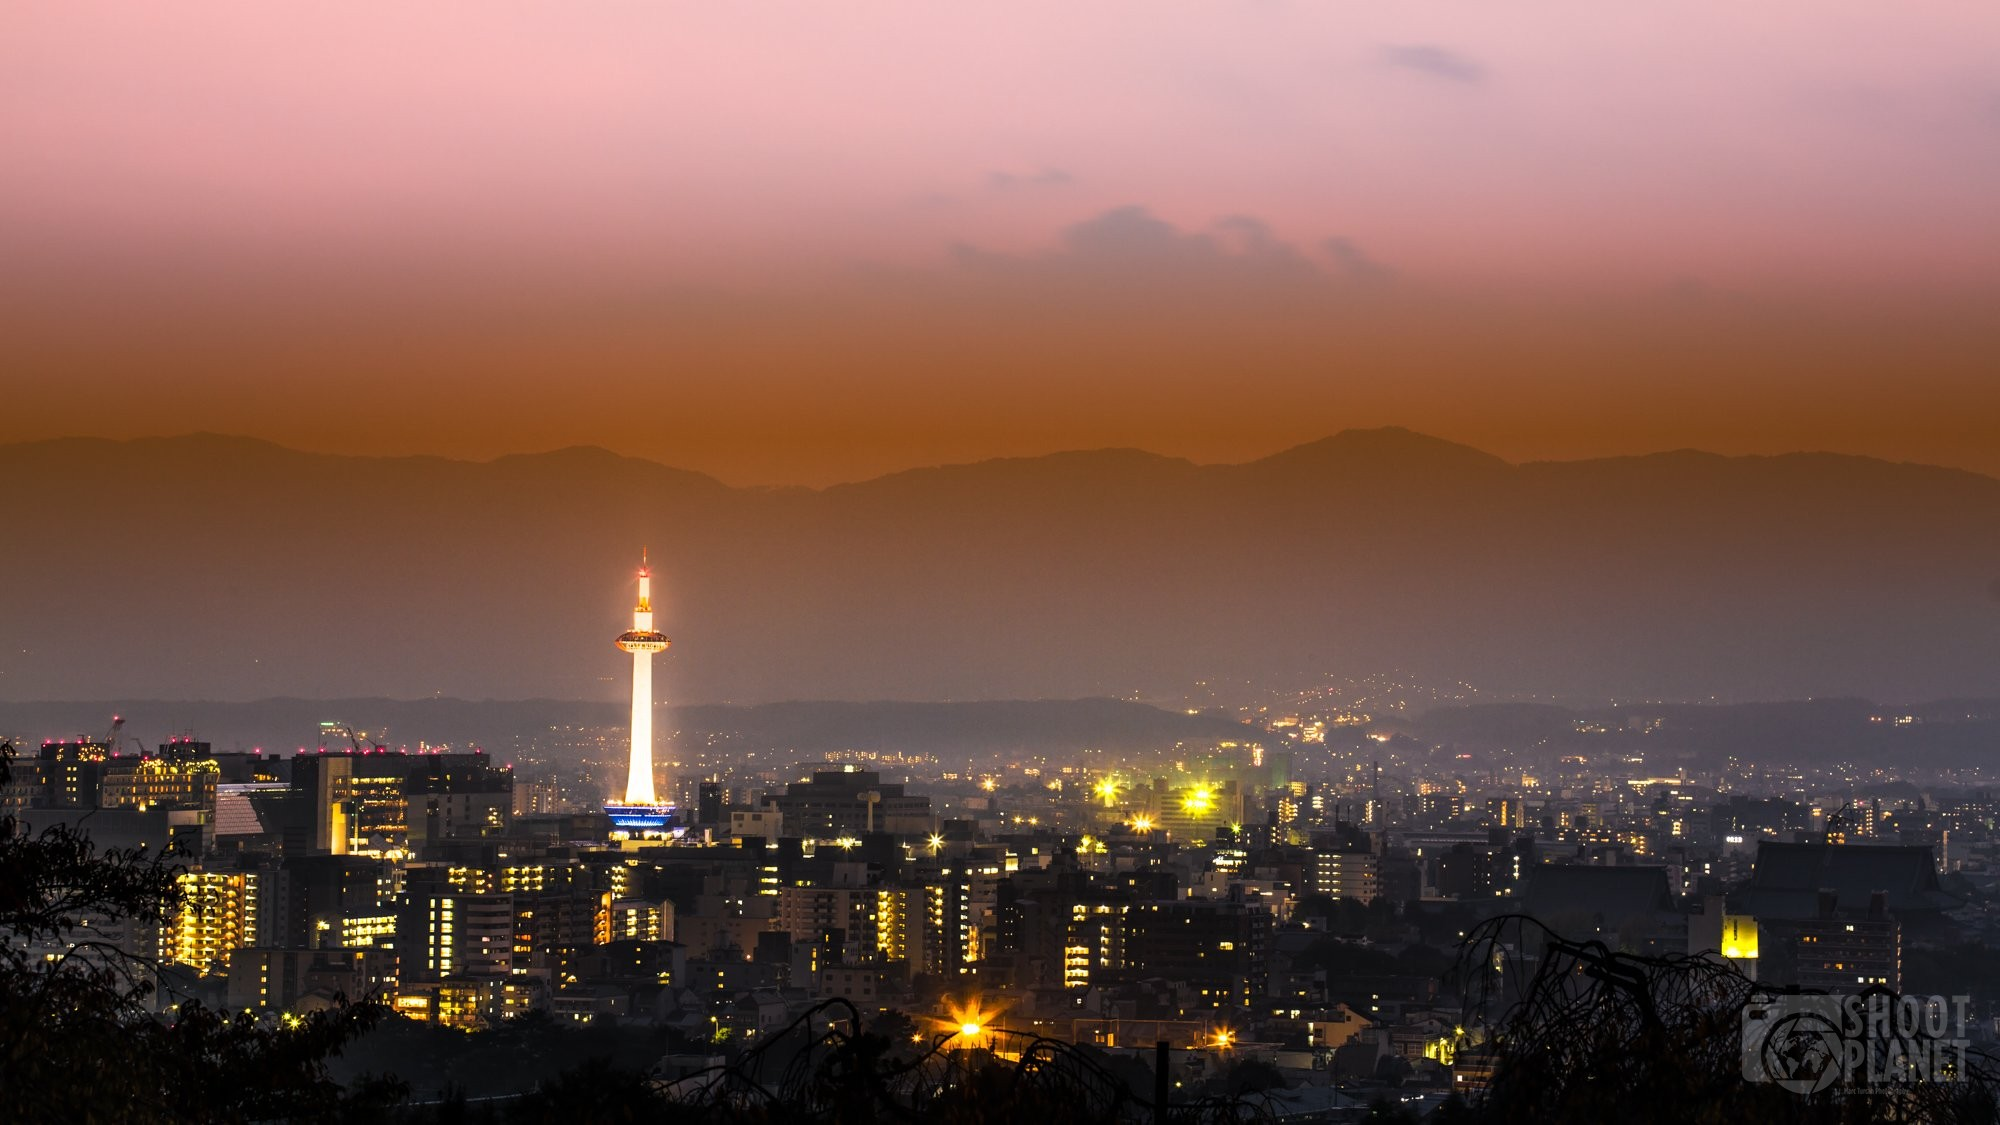 Sunset on Kyoto tower in Japan